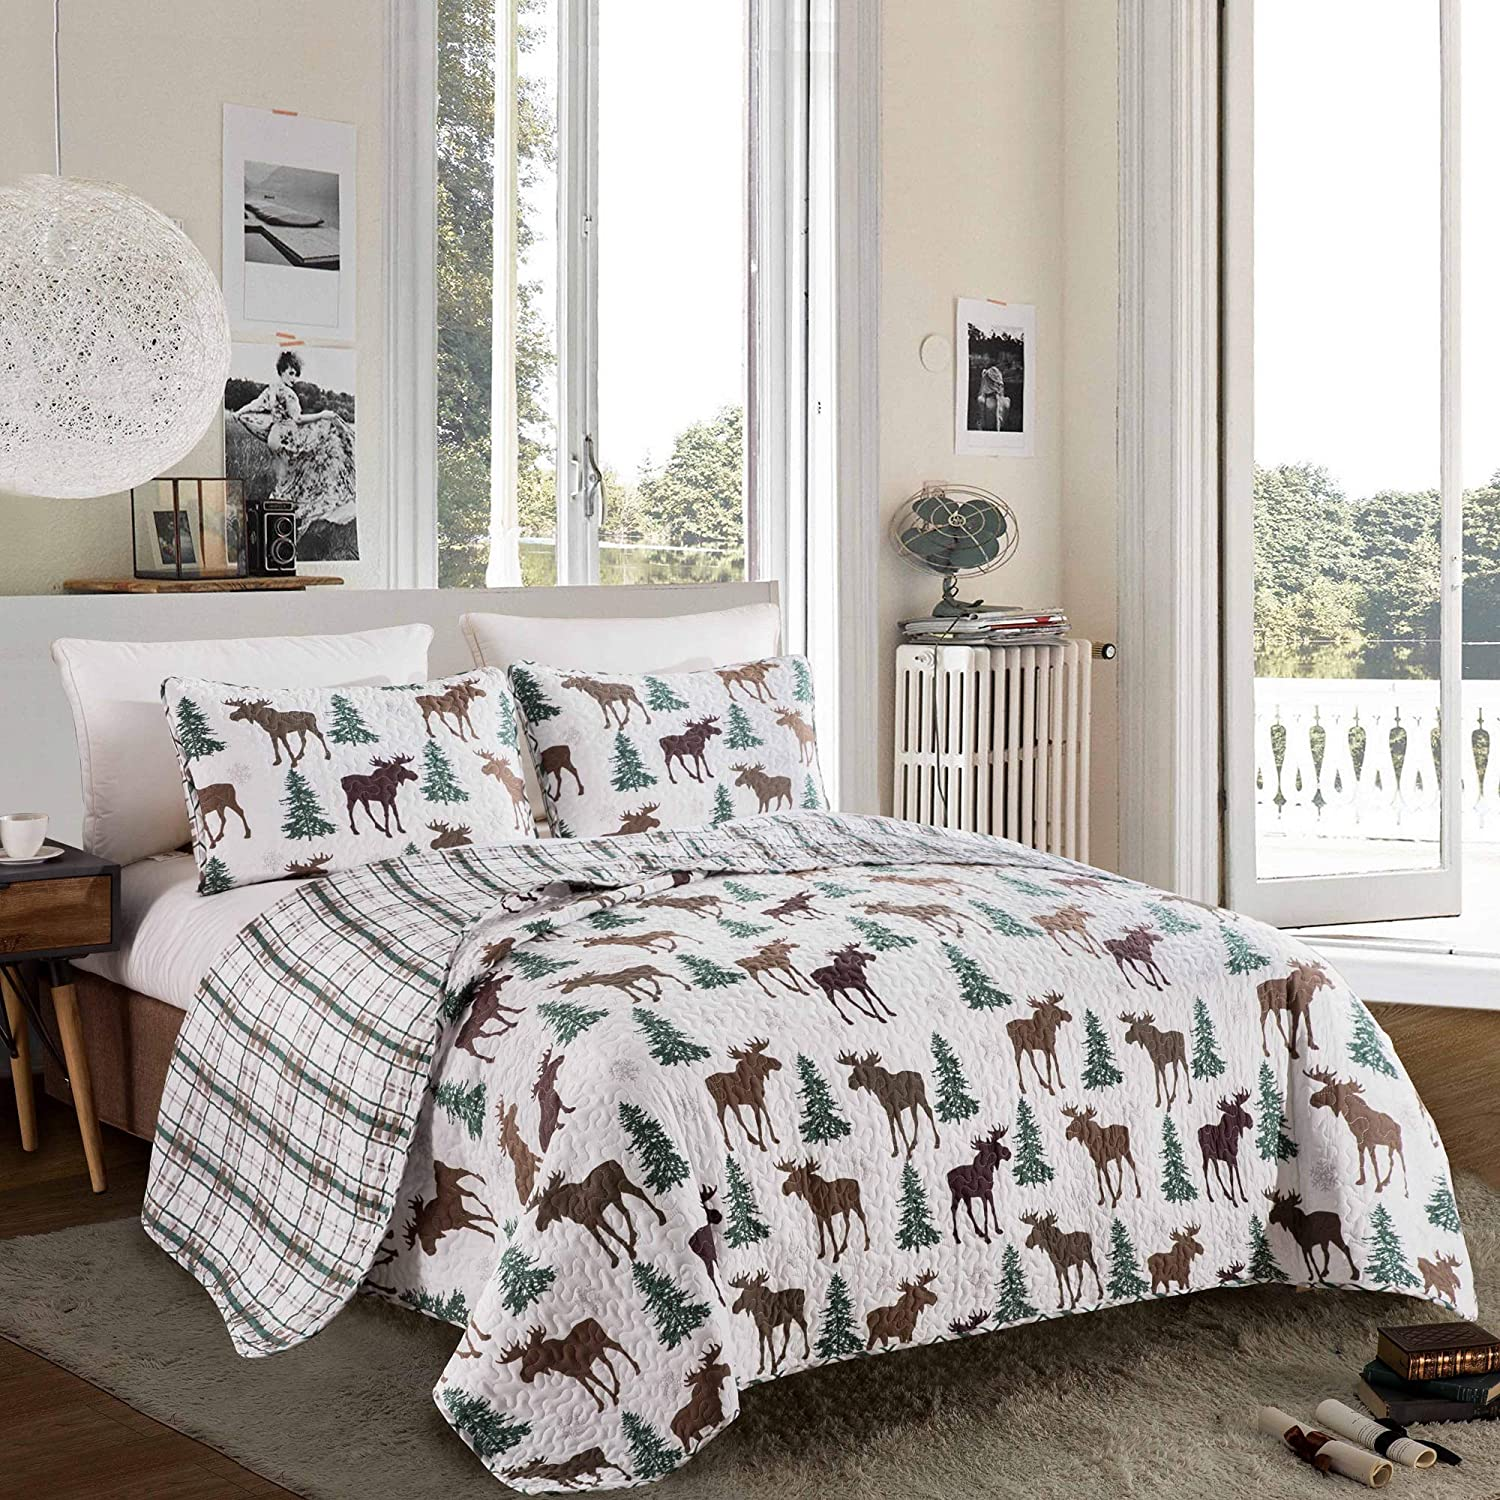 Great Bay Home Lodge Bedspread King Size Quilt with 2 Shams. Cabin 3-Piece Reversible All Season Quilt Set. Rustic Quilt Coverlet Bed Set. Wilderness Collection (Moose - Chocolate)